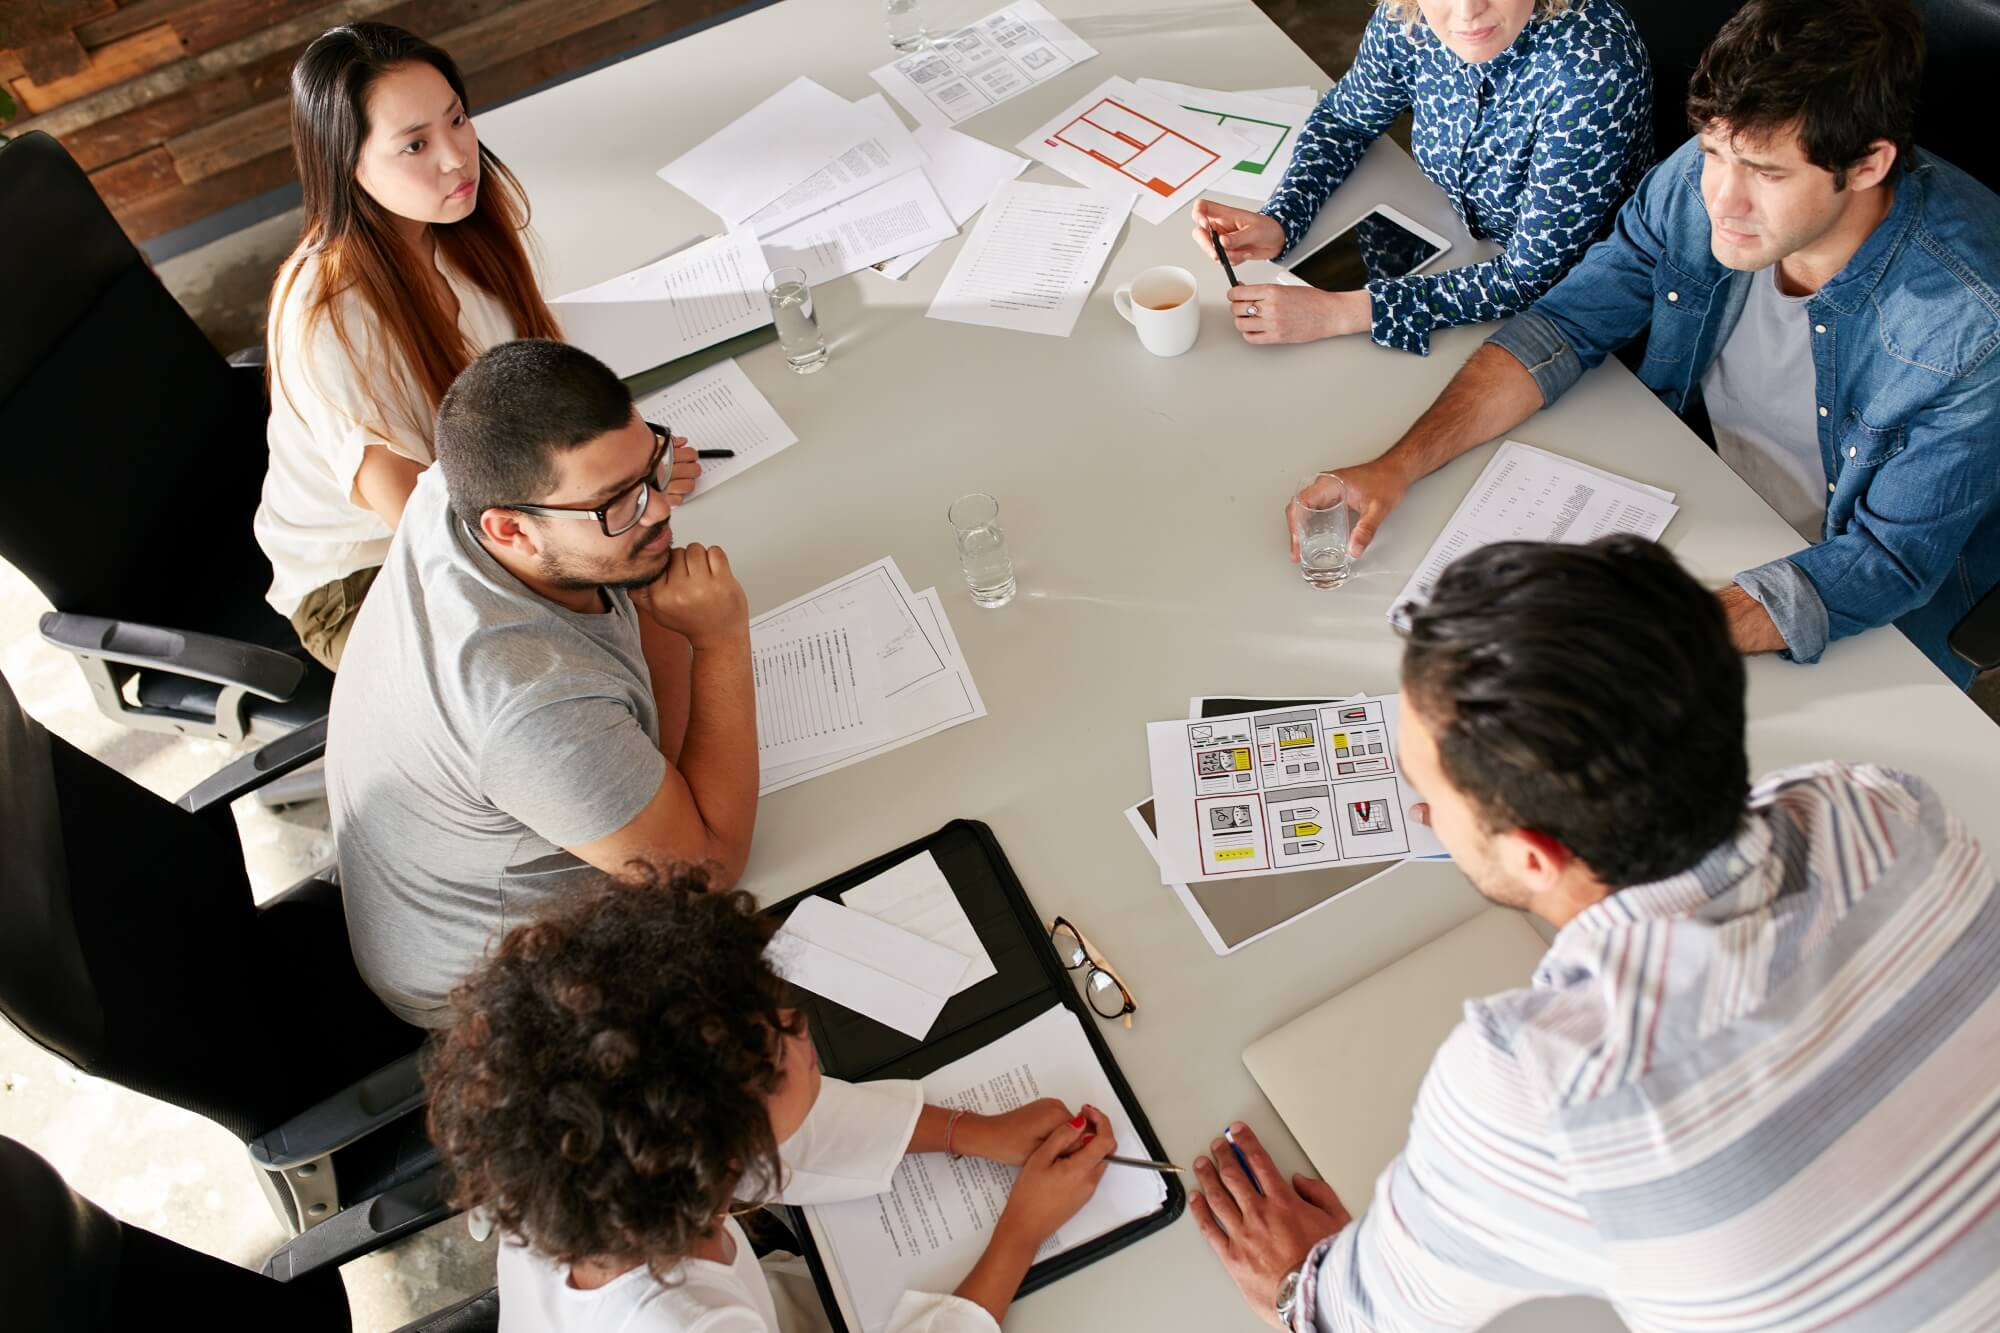 agencies offer the benefit of collaborative teamwork